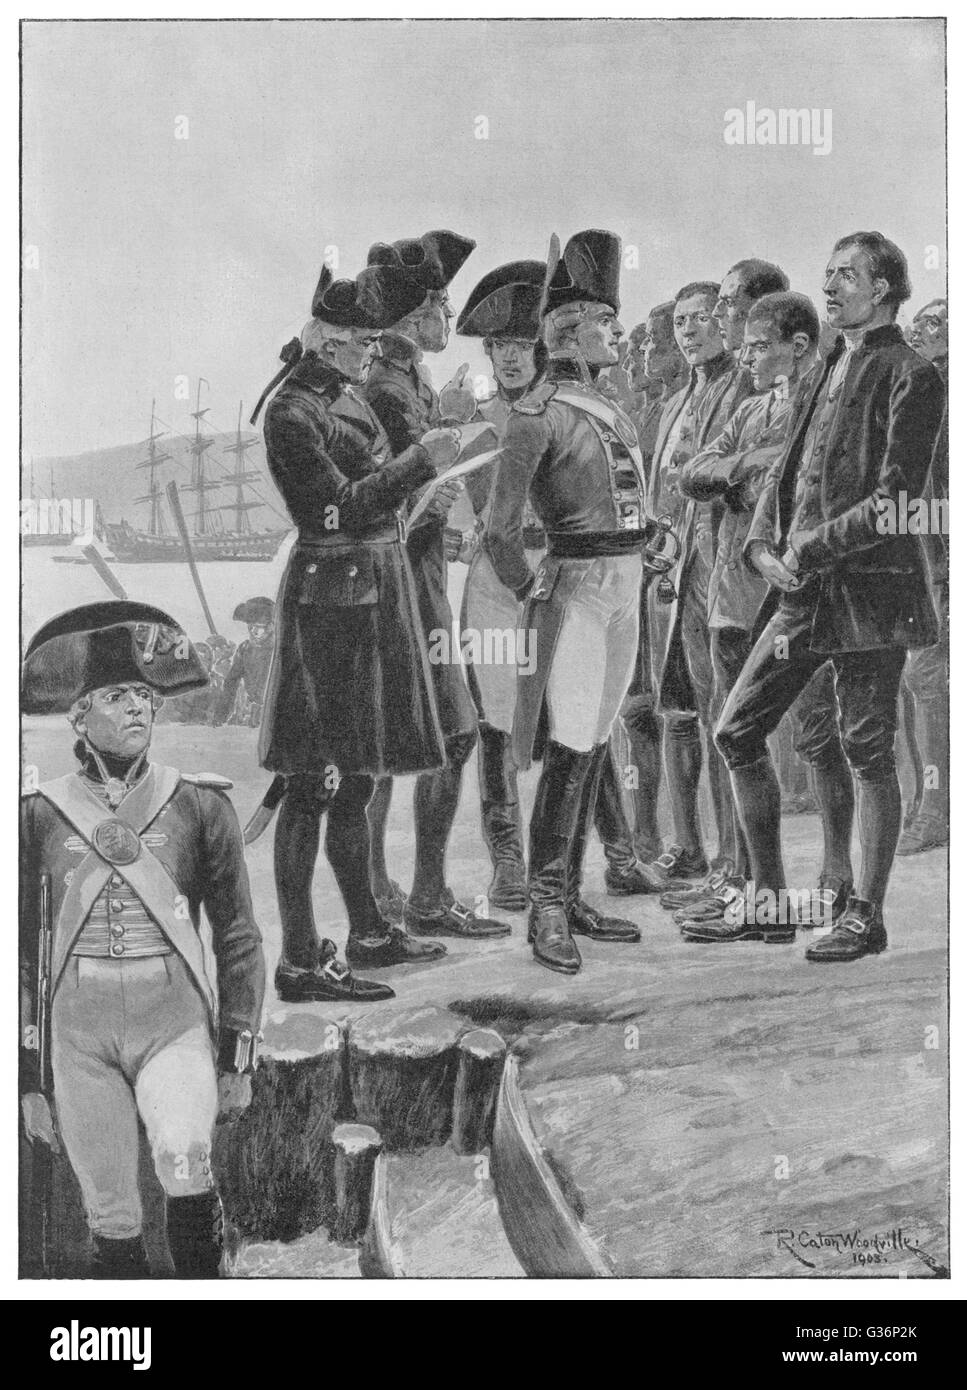 Captain Arthur Phillip, first Governor of New South Wales, inspecting convict settlers at Sydney, Australia, where - Stock Image